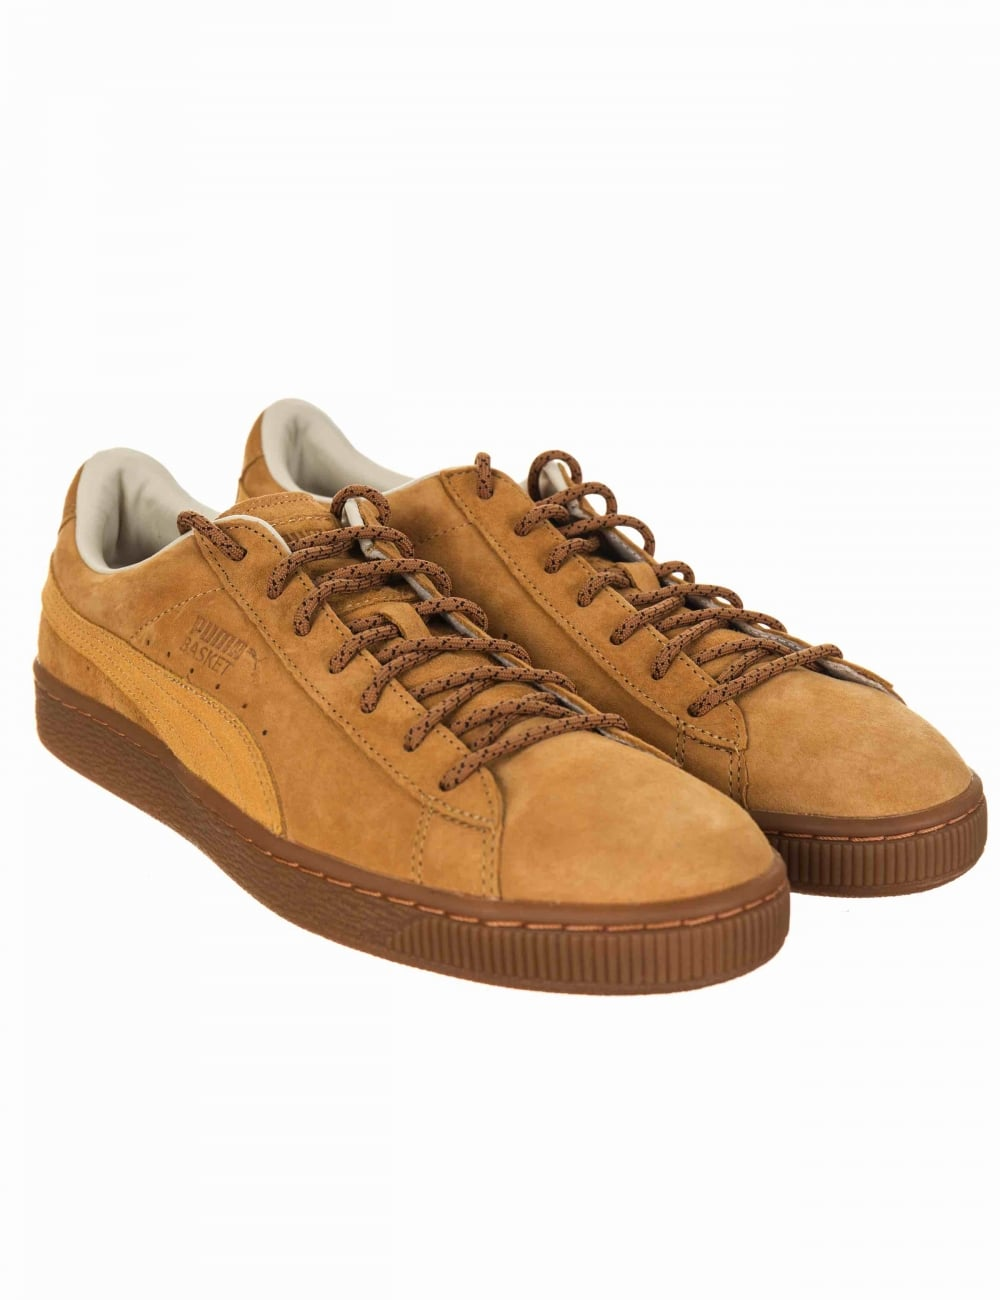 hot sale online 9cf62 a5911 Basket Classic Winterized Shoes - Taffy